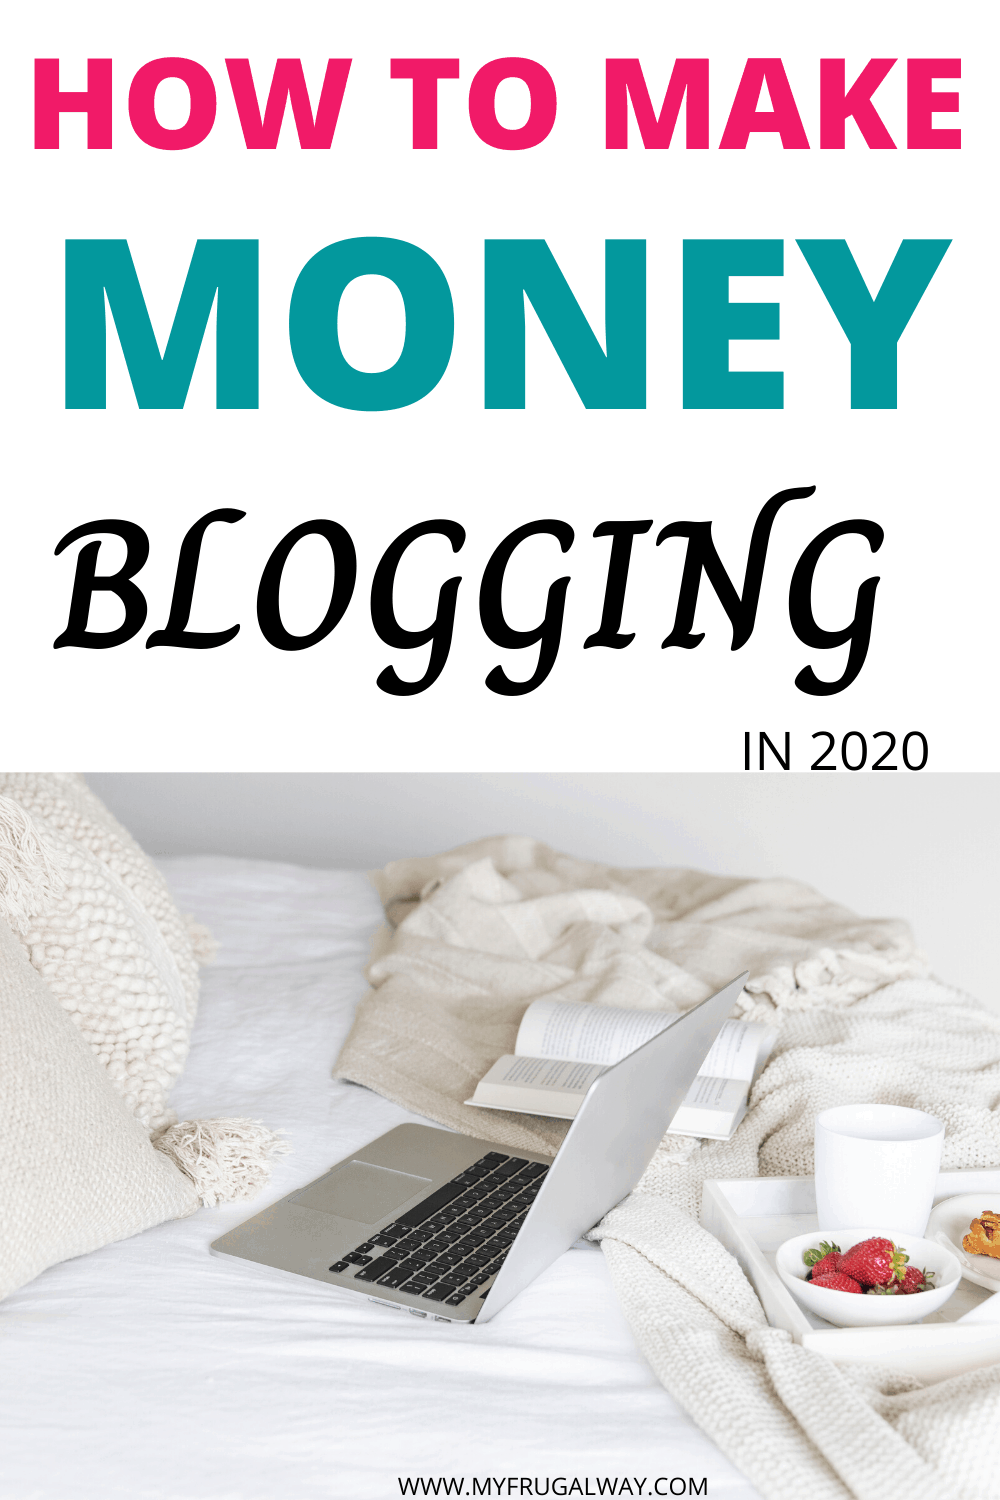 Are you wondering how bloggers make money? Read this article to find how to make money blogging for beginners fast. Learn how you can make money in 2020 with affiliate marketing for passive income. #blogging #wordpress #beginners #startablog